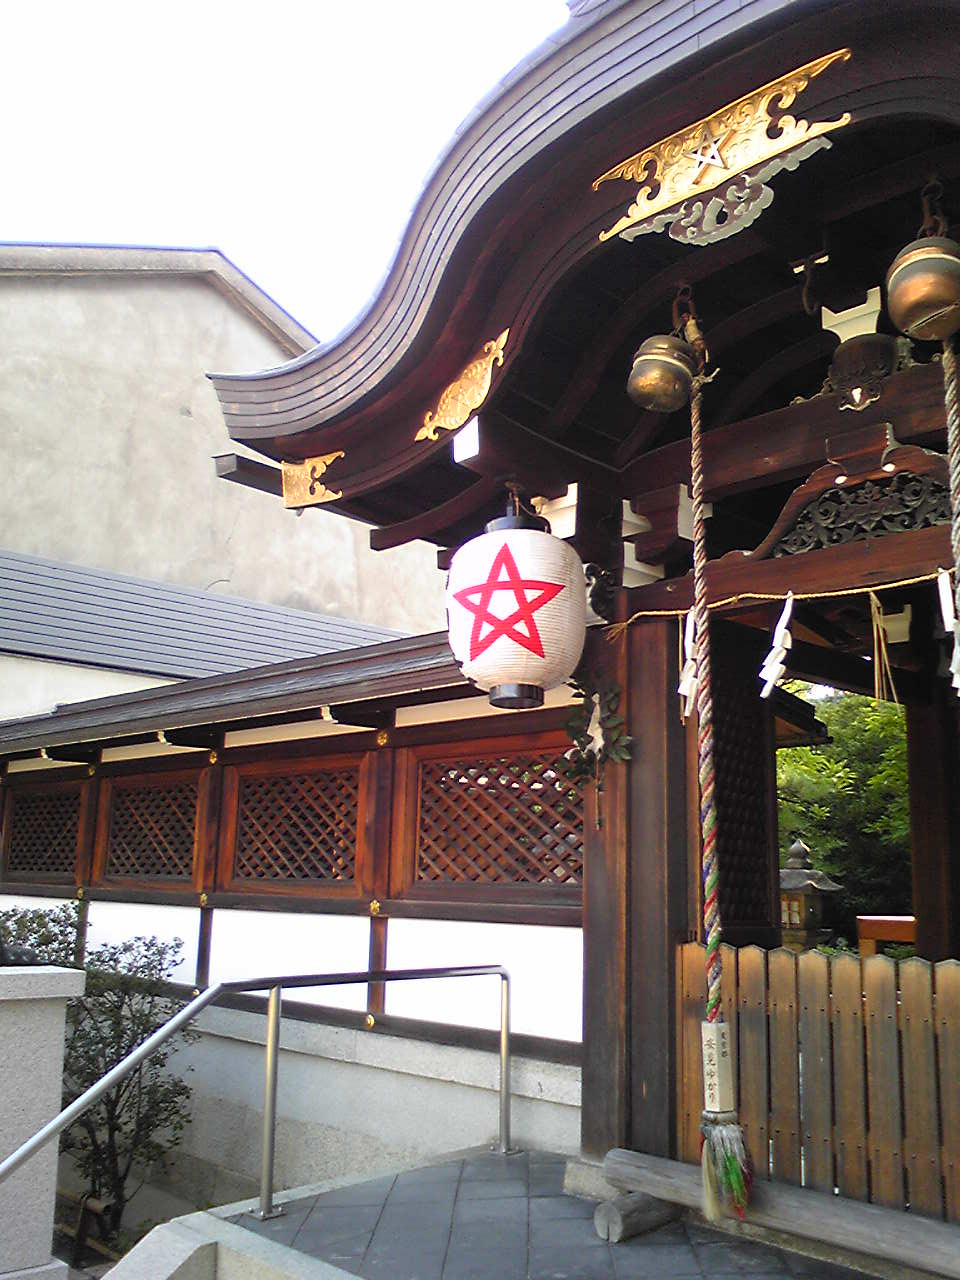 abeno seimei shrine honden 2